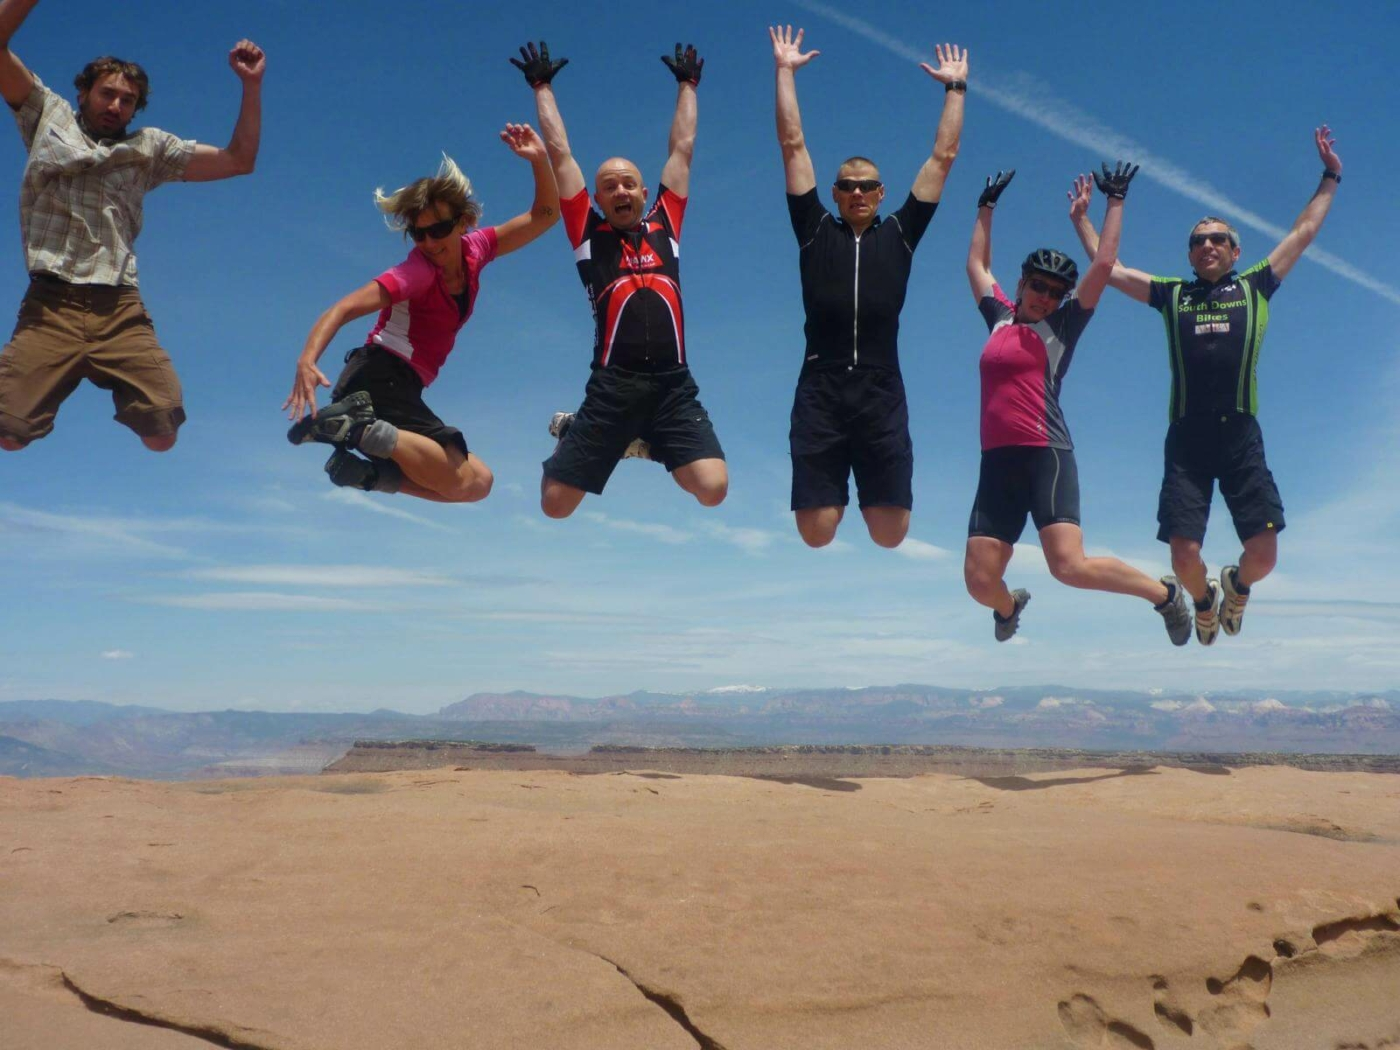 Several people in biking gear leaping into the air and smiling over a reddish brown dry earth landscape in Utah